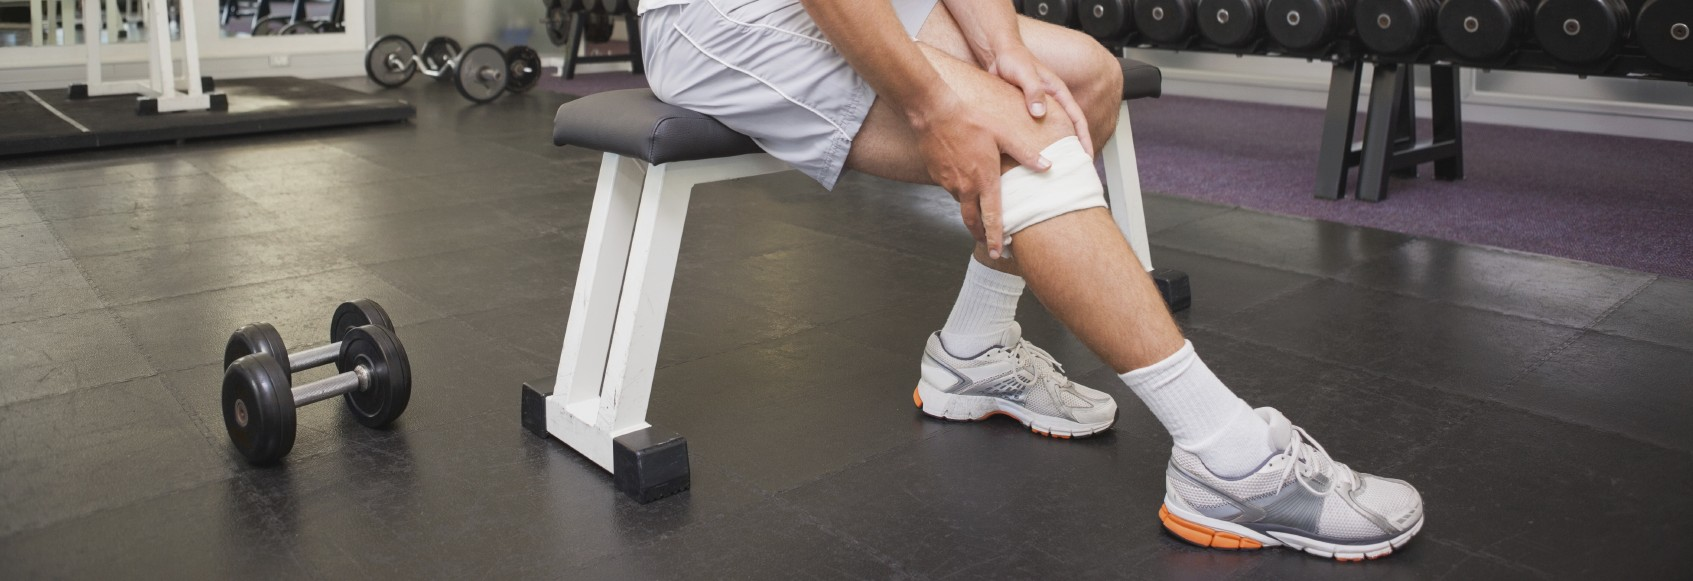 How to Modify Squats After a Knee Injury | Commonwealth